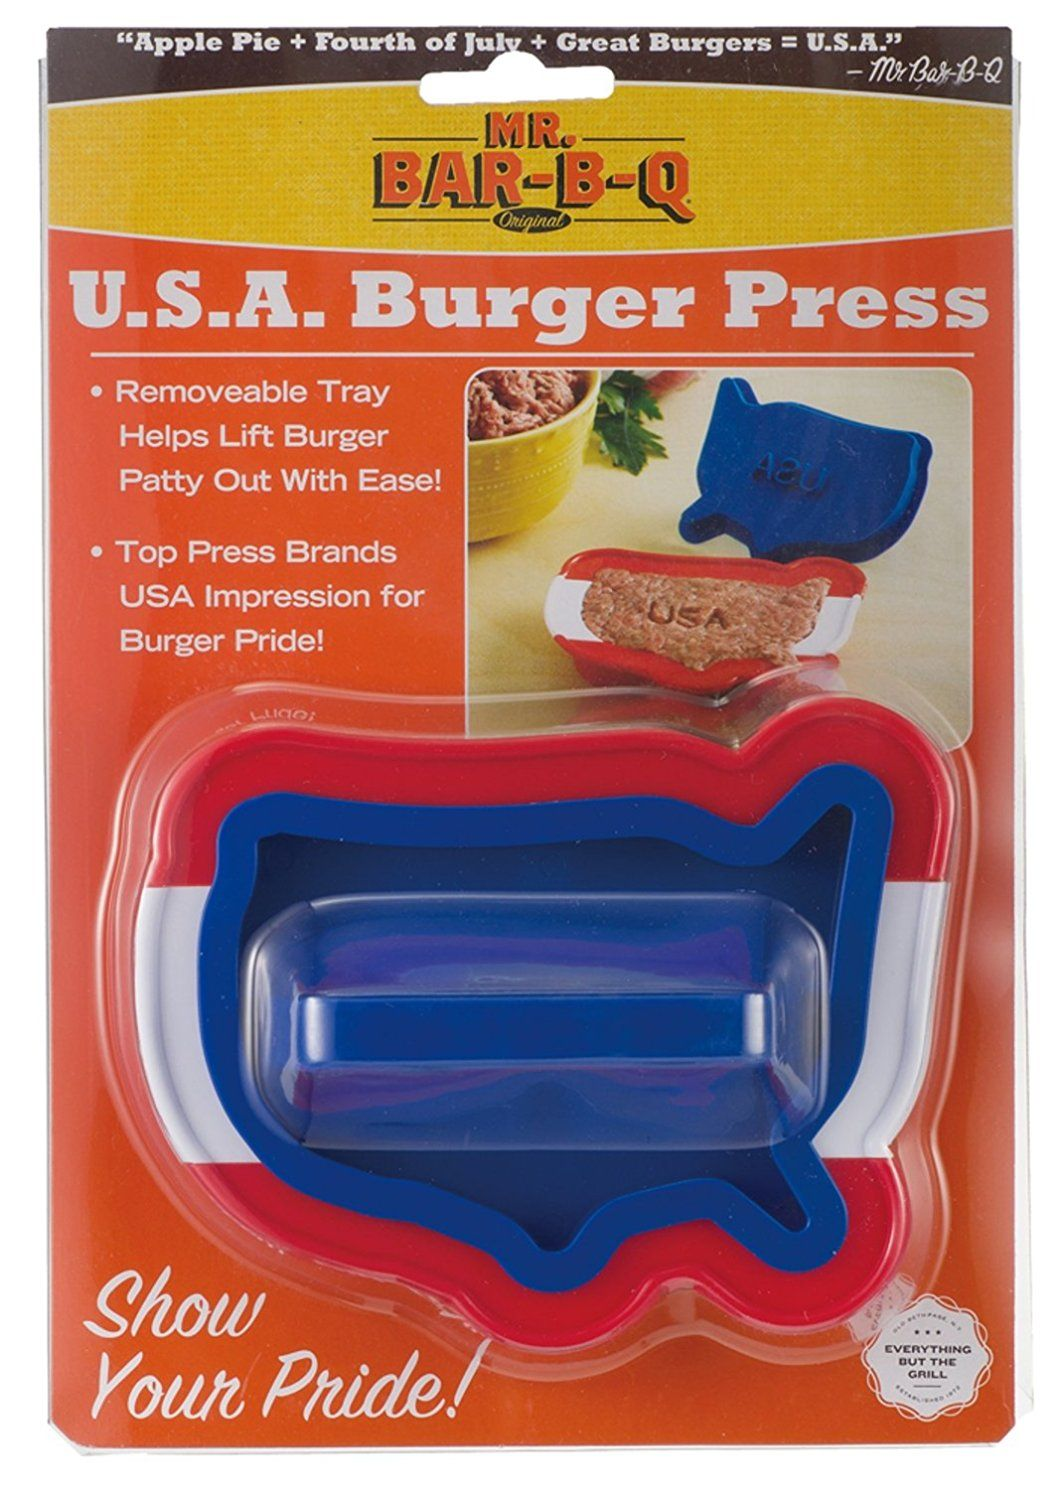 Winning Mr Barbq X Usa Shaped Single Burger Press  Unbelievable  With Magnificent Mr Barbq X Usa Shaped Single Burger Press  Unbelievable Product With Beauteous Wyevale Garden Centre Wokingham Also Garden Catalogues Uk In Addition Soundproof Garden Shed And One Devonshire Gardens Restaurant As Well As Asda Garden Compost Additionally Riccarton Garden Centre From Itpinterestcom With   Magnificent Mr Barbq X Usa Shaped Single Burger Press  Unbelievable  With Beauteous Mr Barbq X Usa Shaped Single Burger Press  Unbelievable Product And Winning Wyevale Garden Centre Wokingham Also Garden Catalogues Uk In Addition Soundproof Garden Shed From Itpinterestcom